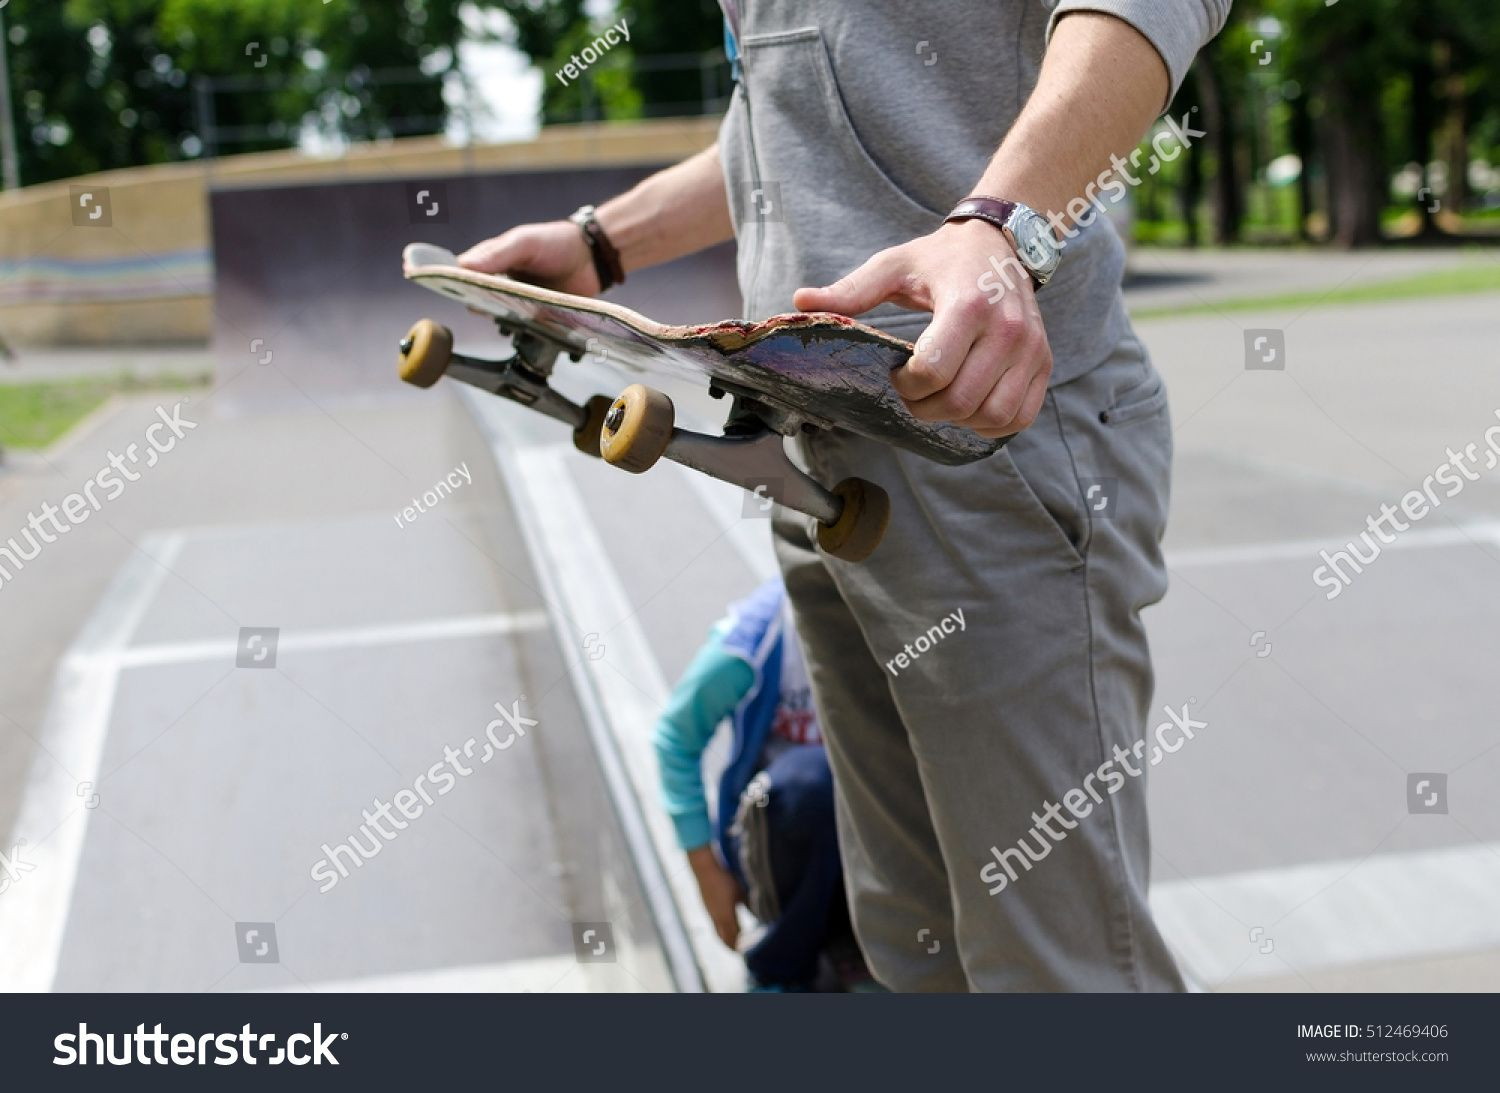 Young man with the skateboard in the park #Ad , #AFF, #man#Young#park#skateboard